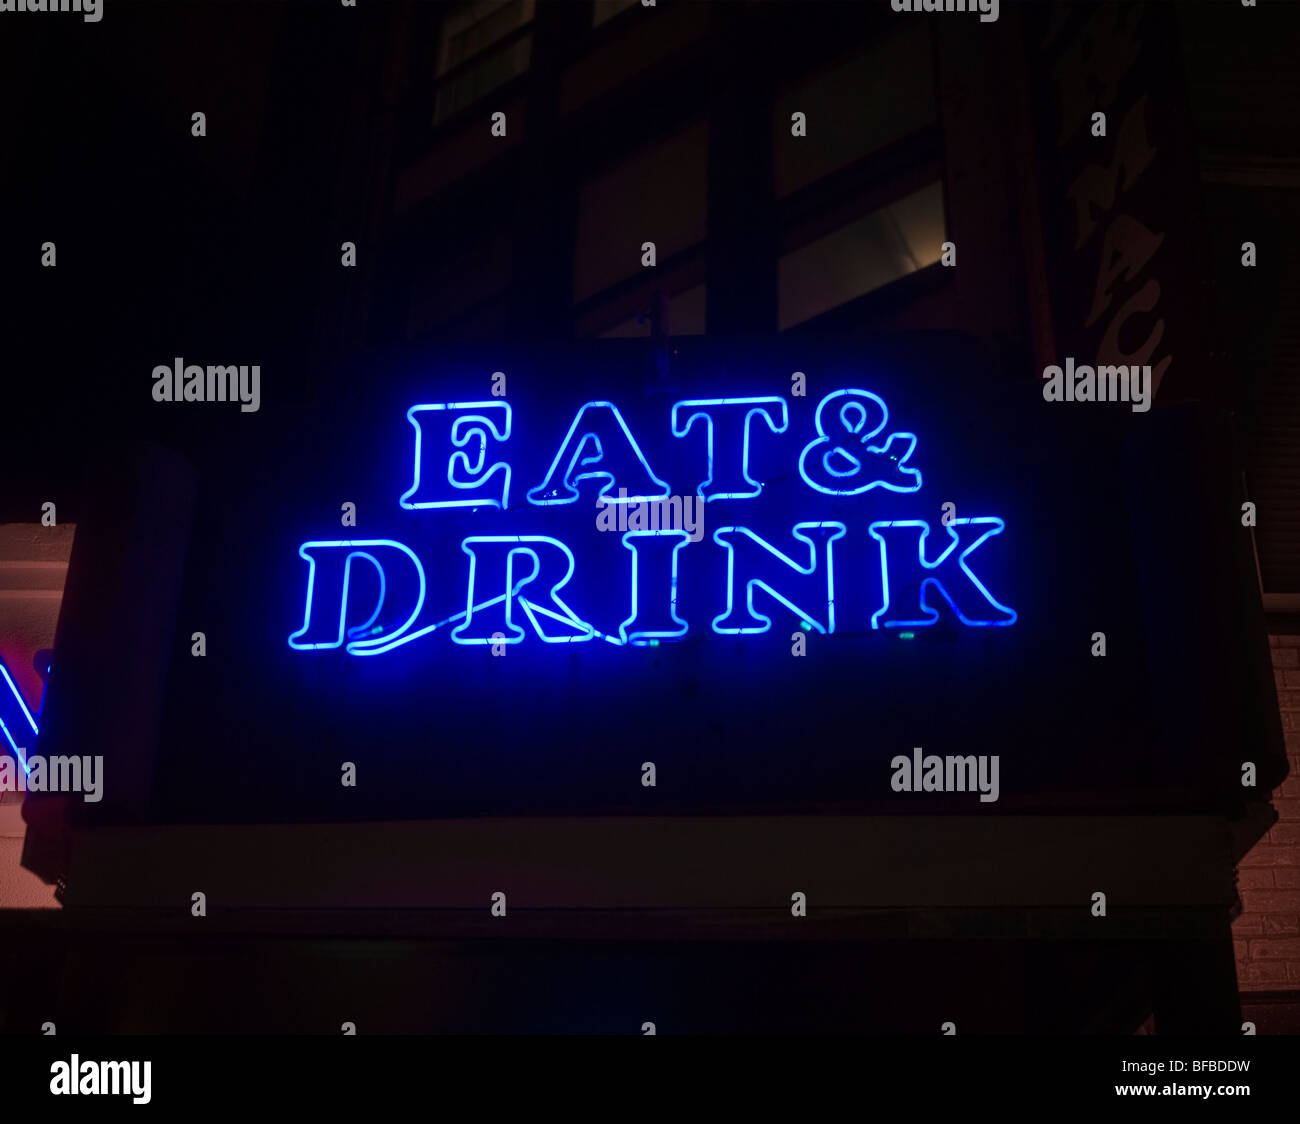 Eat and drink illuminated neon sign at the entrance of a restaurant in the Tribeca neighborhood of New York Stock Photo